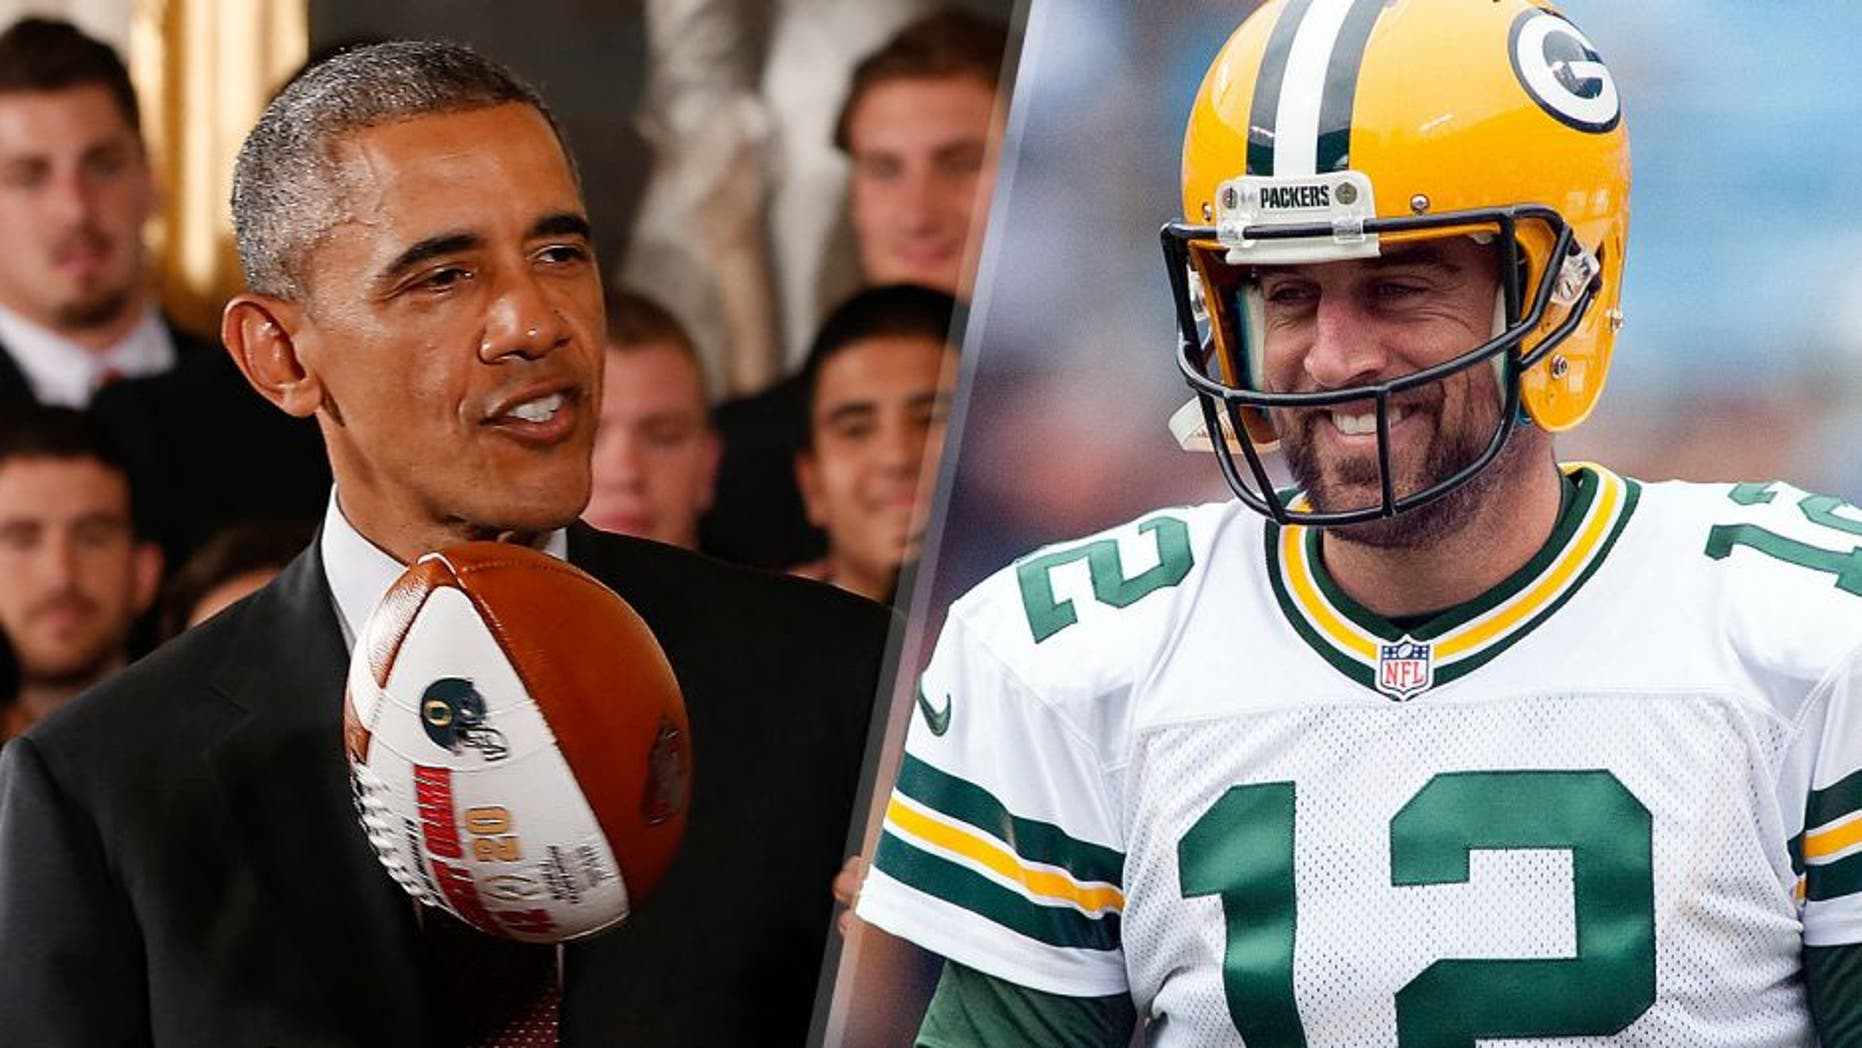 United States president Barack Obama tosses a national championship game ball gift during a ceremony honoring the 2014 NCAA football national champion Ohio State Buckeyes in the East Room at the White House. Mandatory Credit: Geoff Burke-USA TODAY Sports Green Bay Packers quarterback Aaron Rodgers (12) smiles before the game against the Carolina Panthers at Bank of America Stadium. Mandatory Credit: Jeremy Brevard-USA TODAY